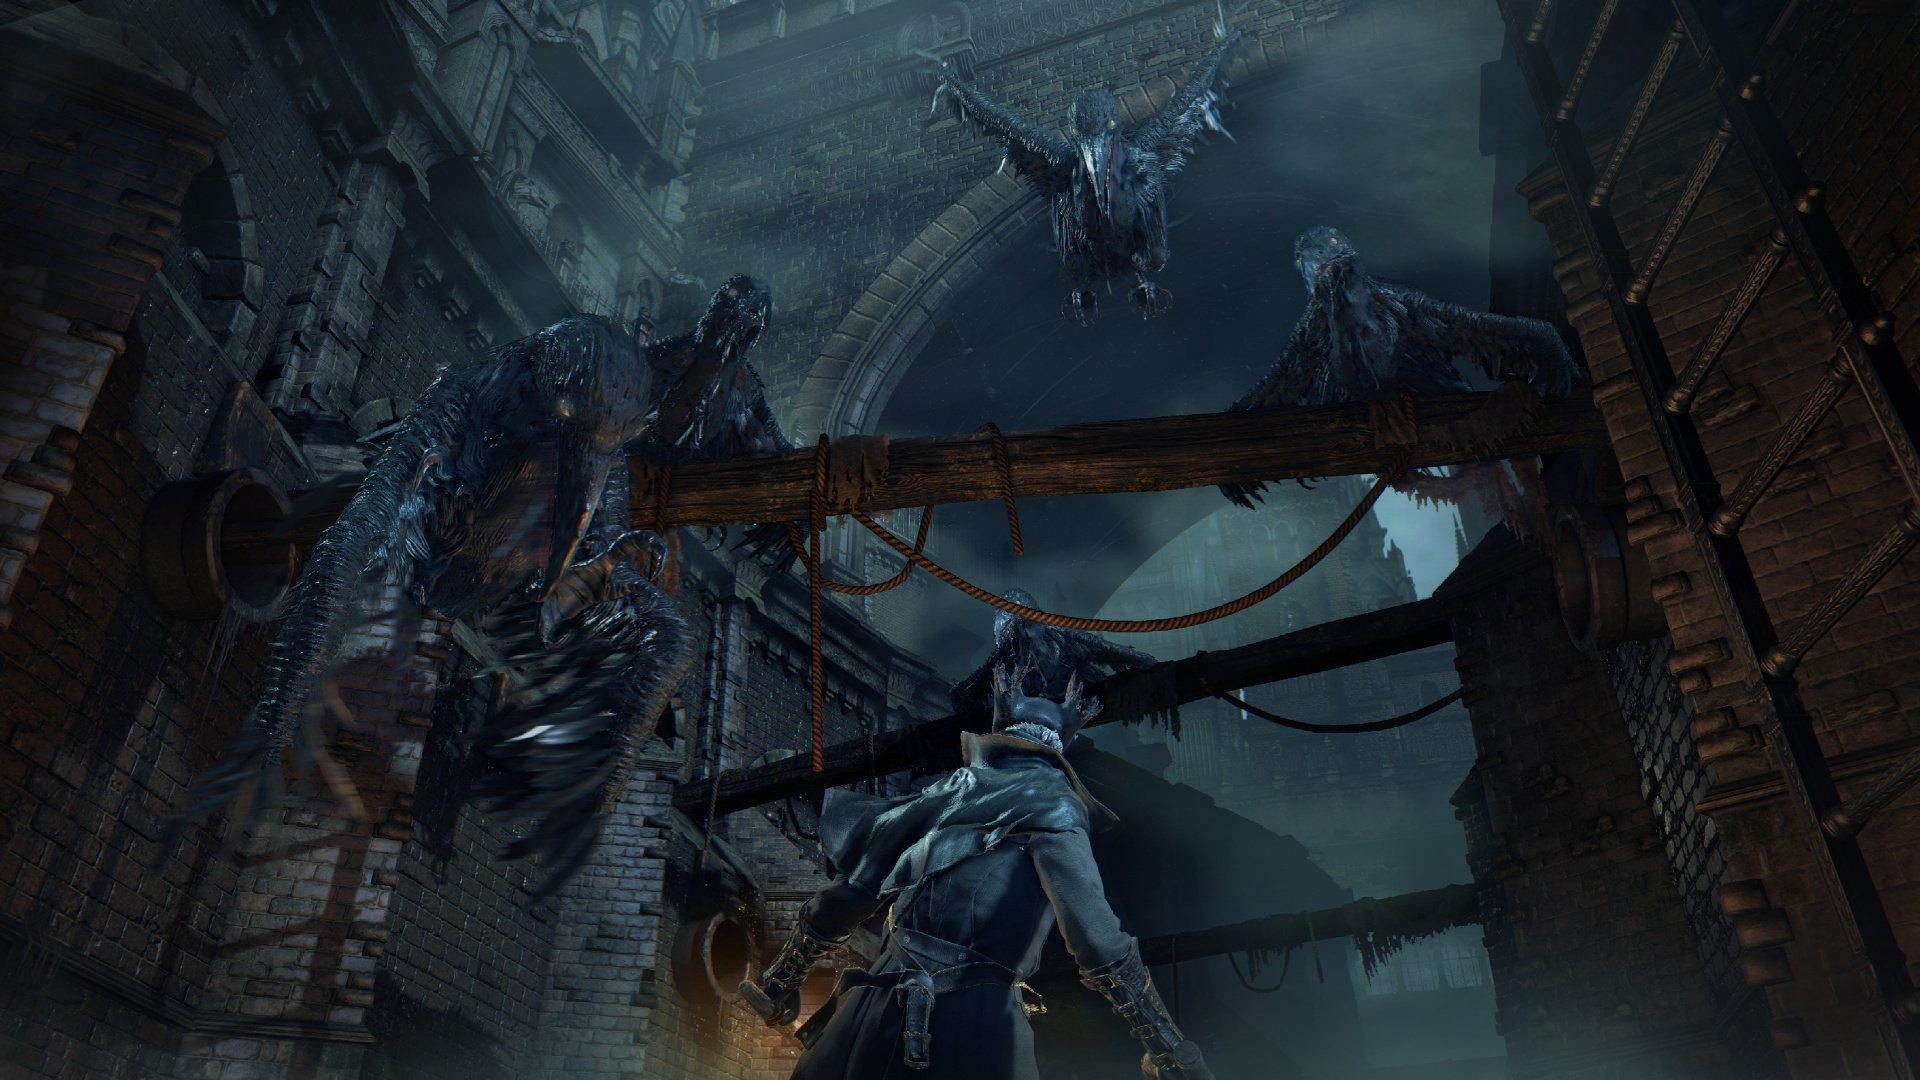 Bloodborne Images Ravens HD Wallpaper And Background Photos